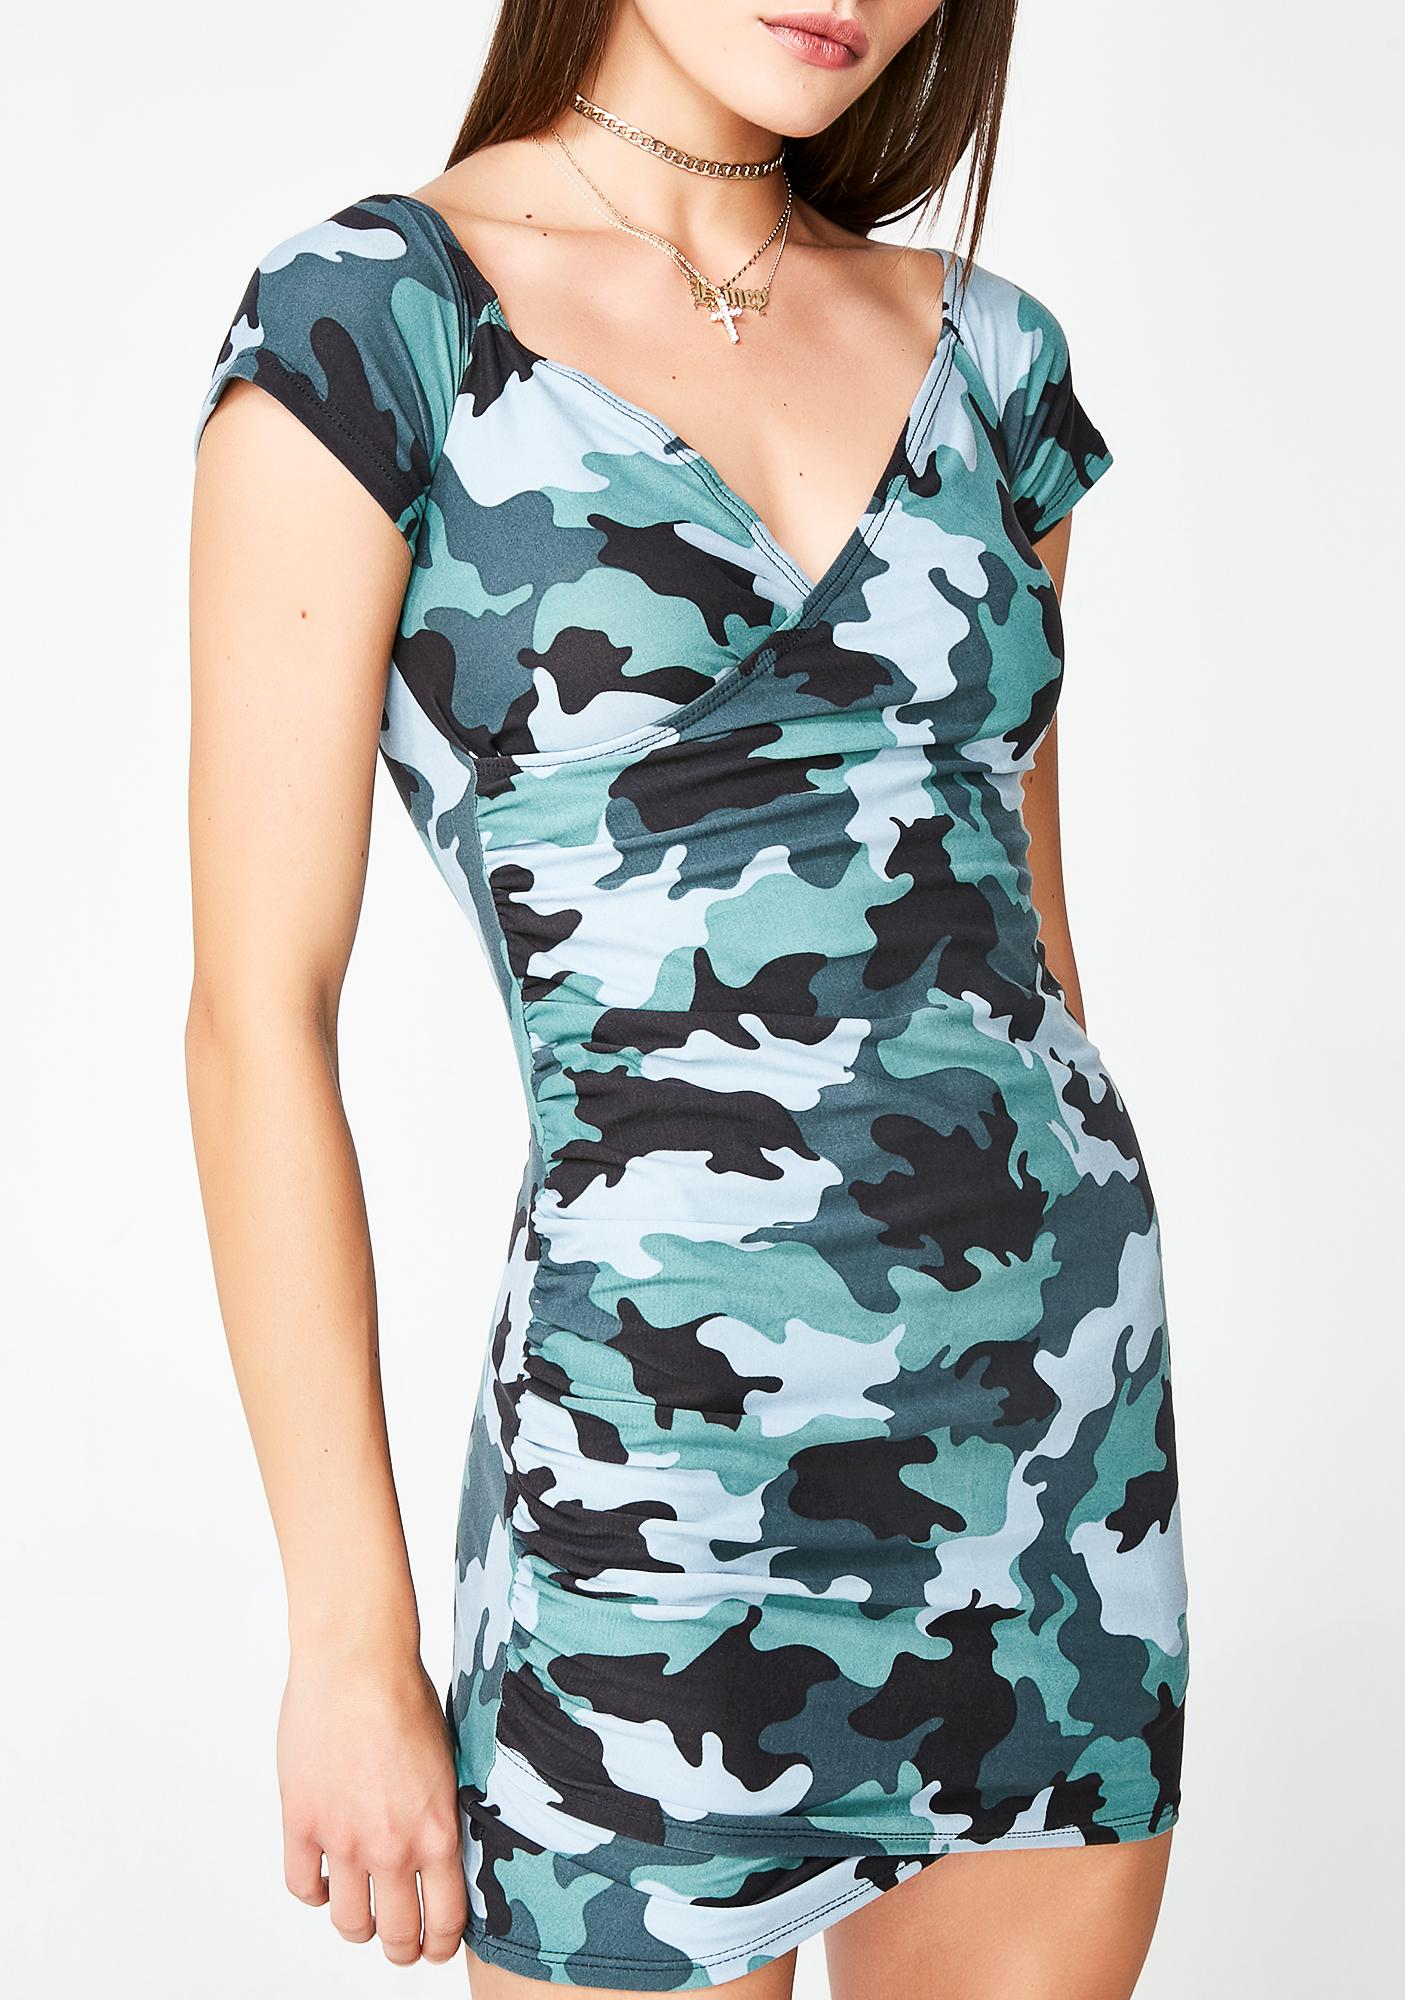 Break Ranks Camo Dress